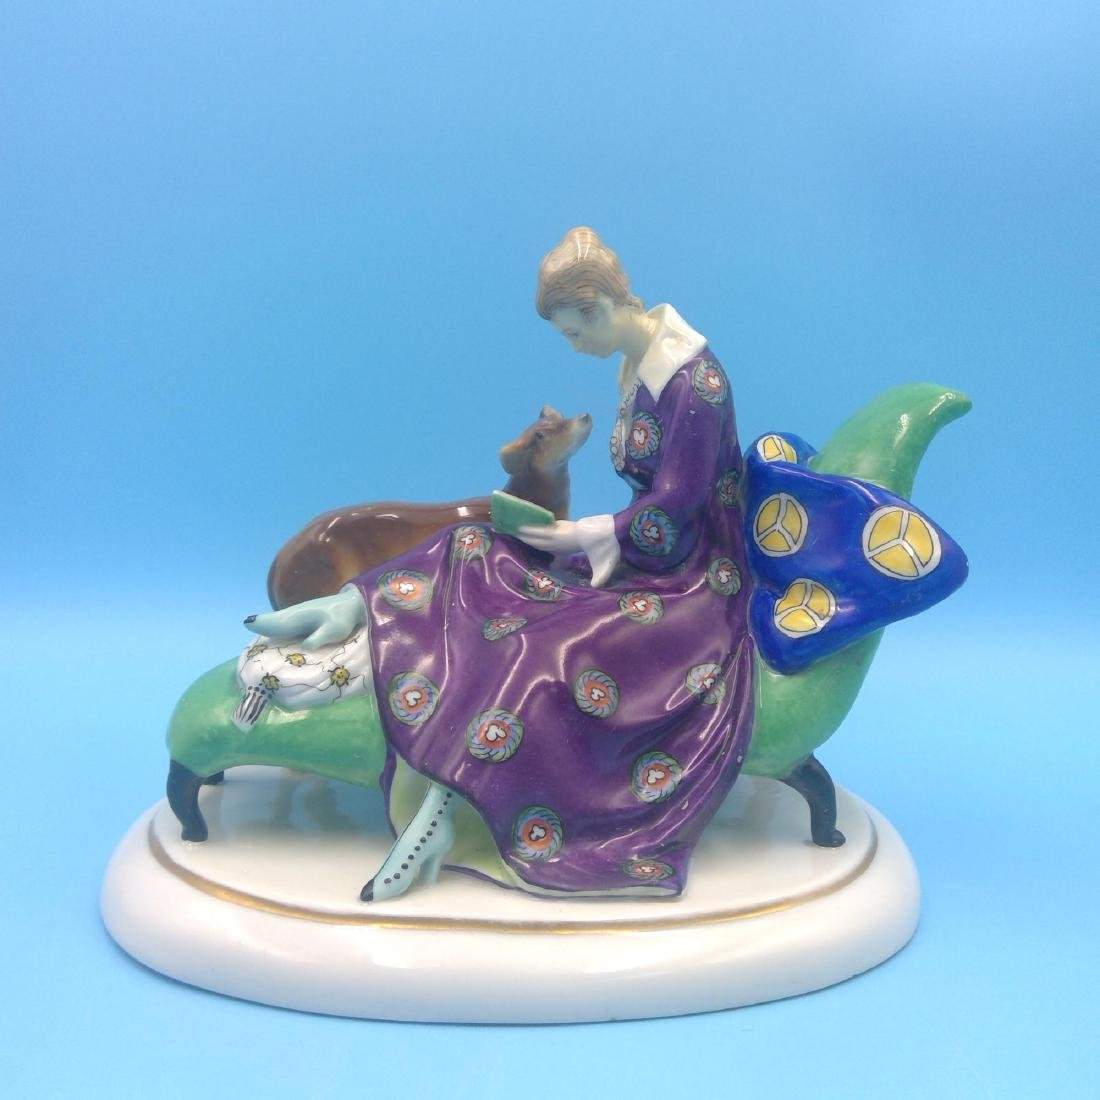 GOEBEL ART DECO GERMAN PORCELAIN FIGURINE